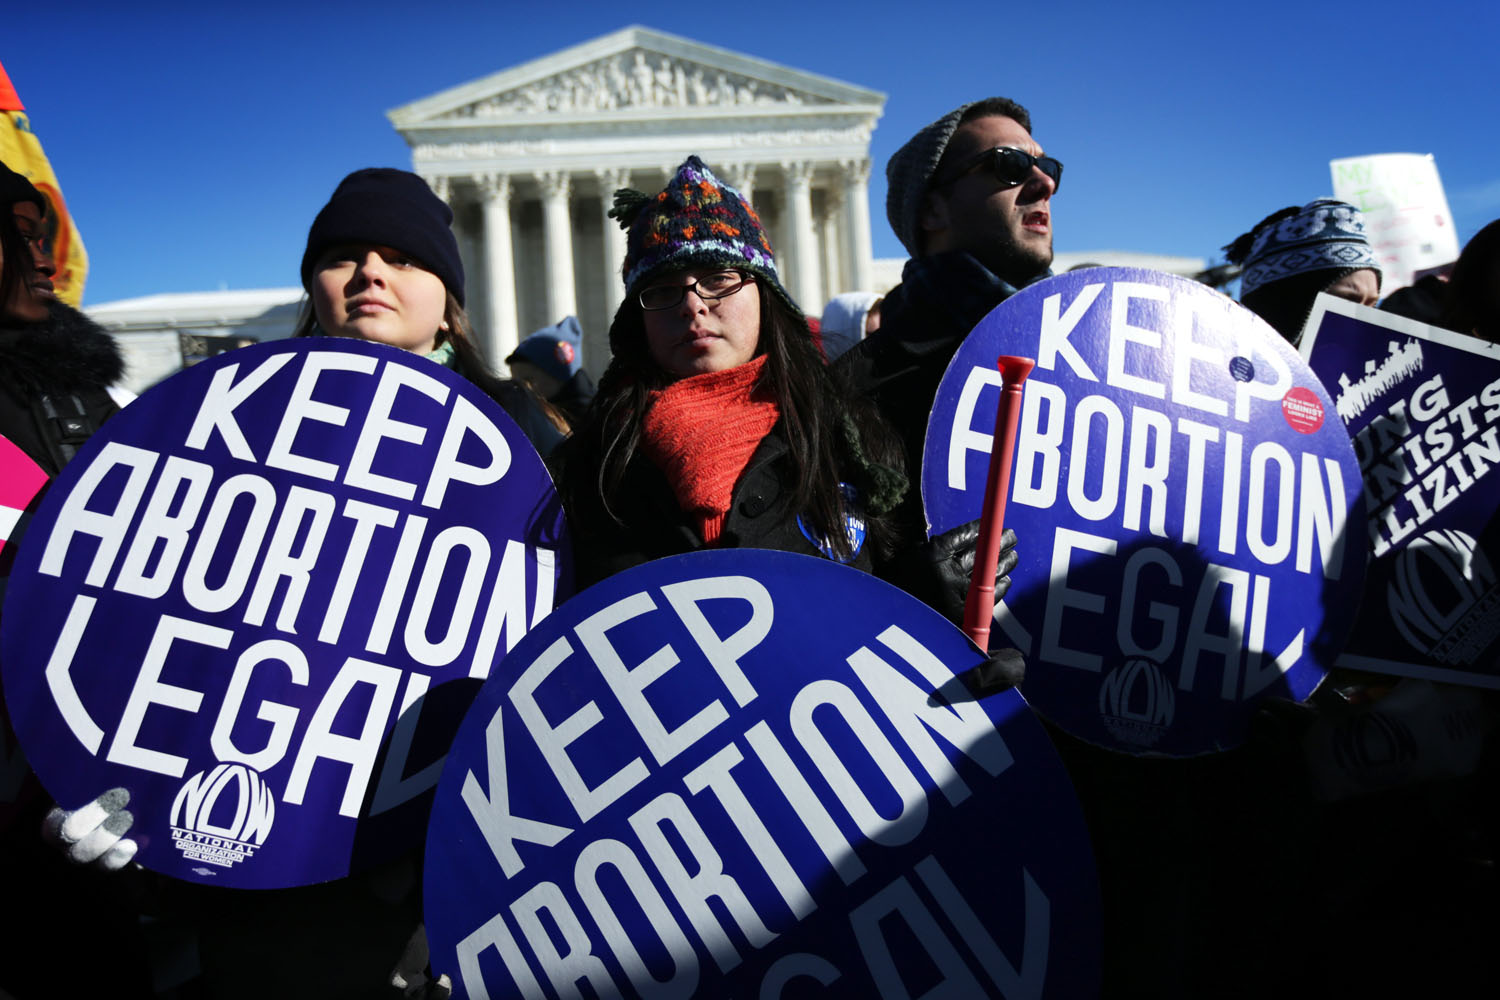 Pro-choice activists hold signs as marchers of the annual March for Life arrive in front of the U.S. Supreme Court Jan. 22, 2014 on Capitol Hill in Washington, D.C.